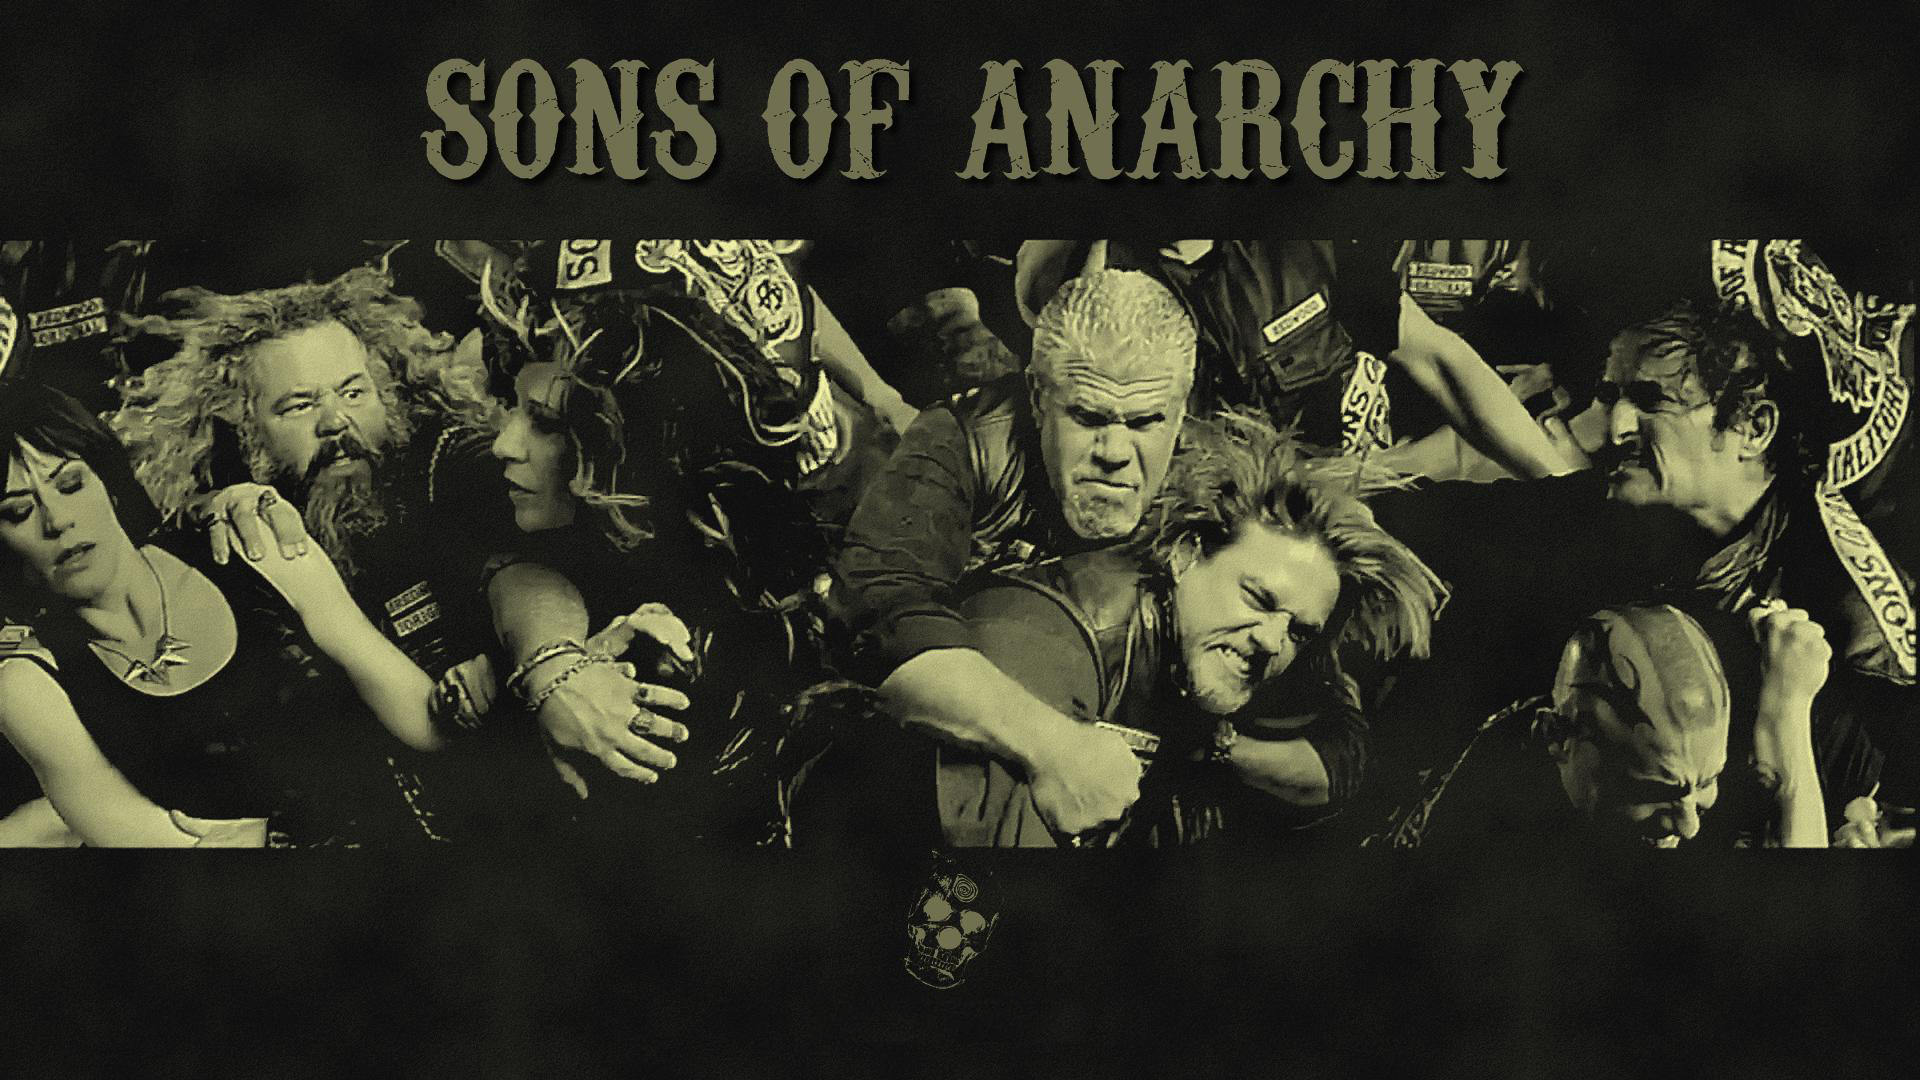 Free Download Sons Of Anarchy Desktop Hd Wallpapers 1920x1080